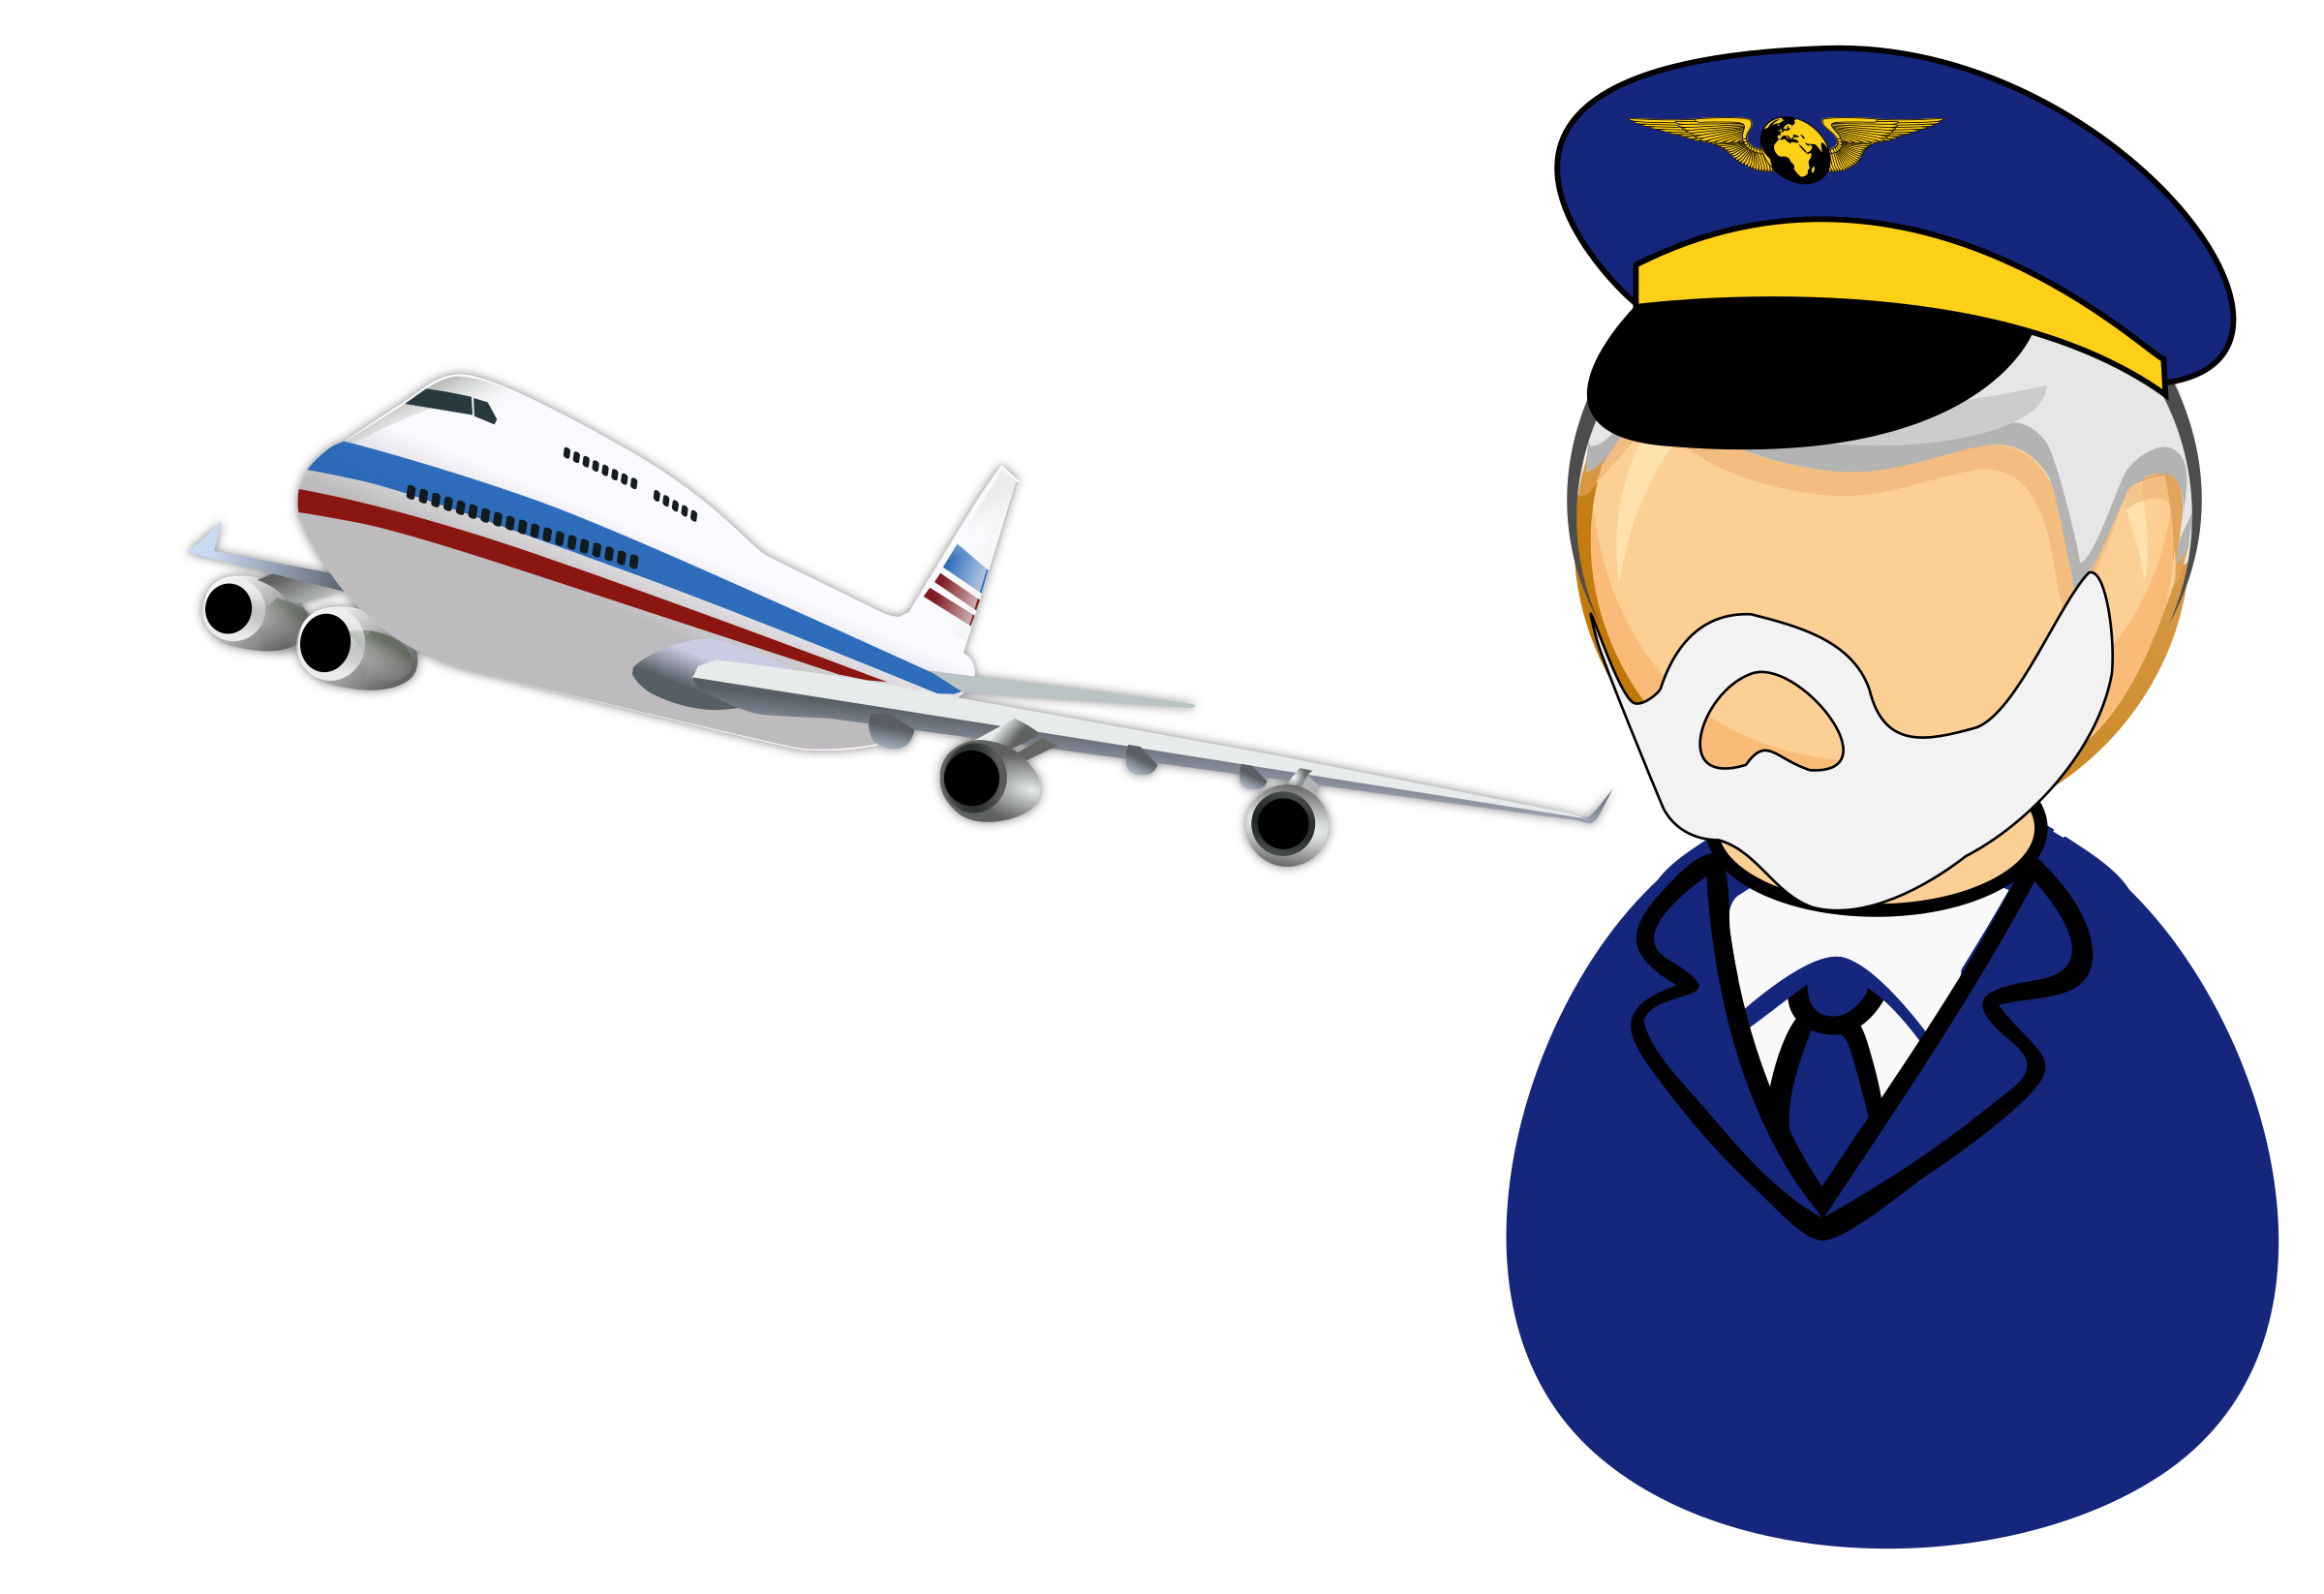 Airline captain big image. Flying clipart airplane pilot